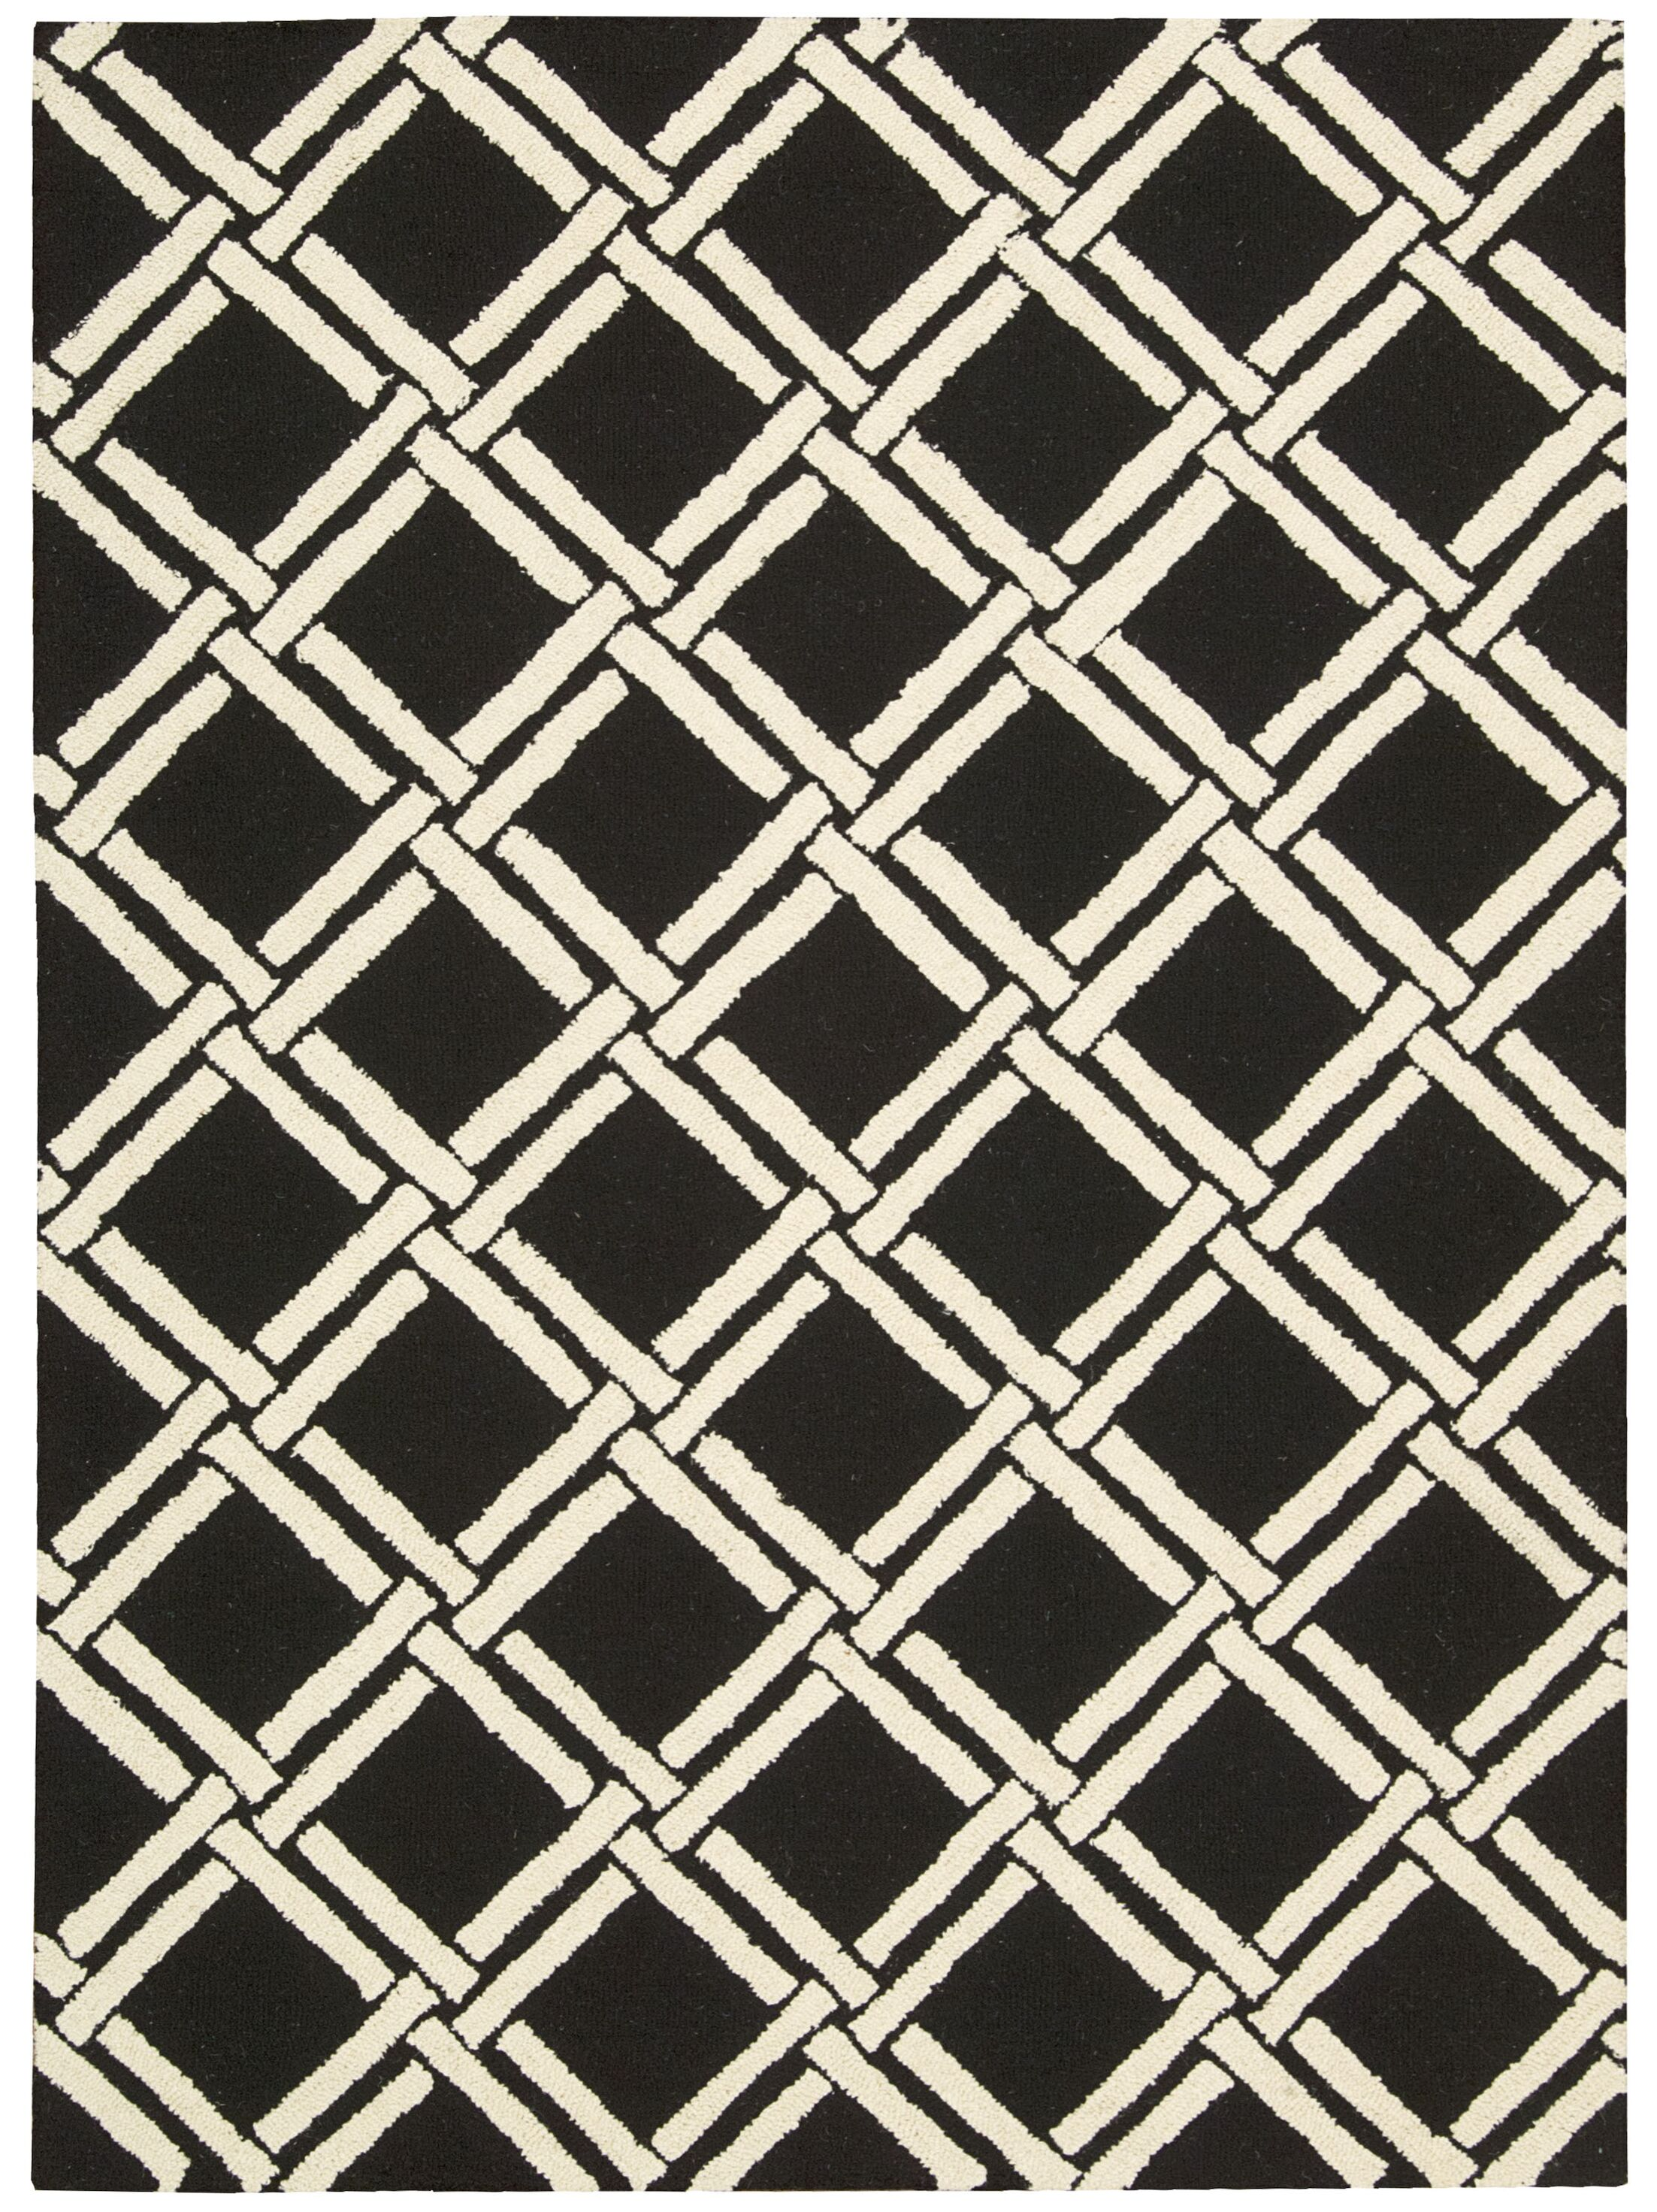 Hulings Hand-Knotted Black/White Area Rug Rug Size: Rectangle 8' x 11'